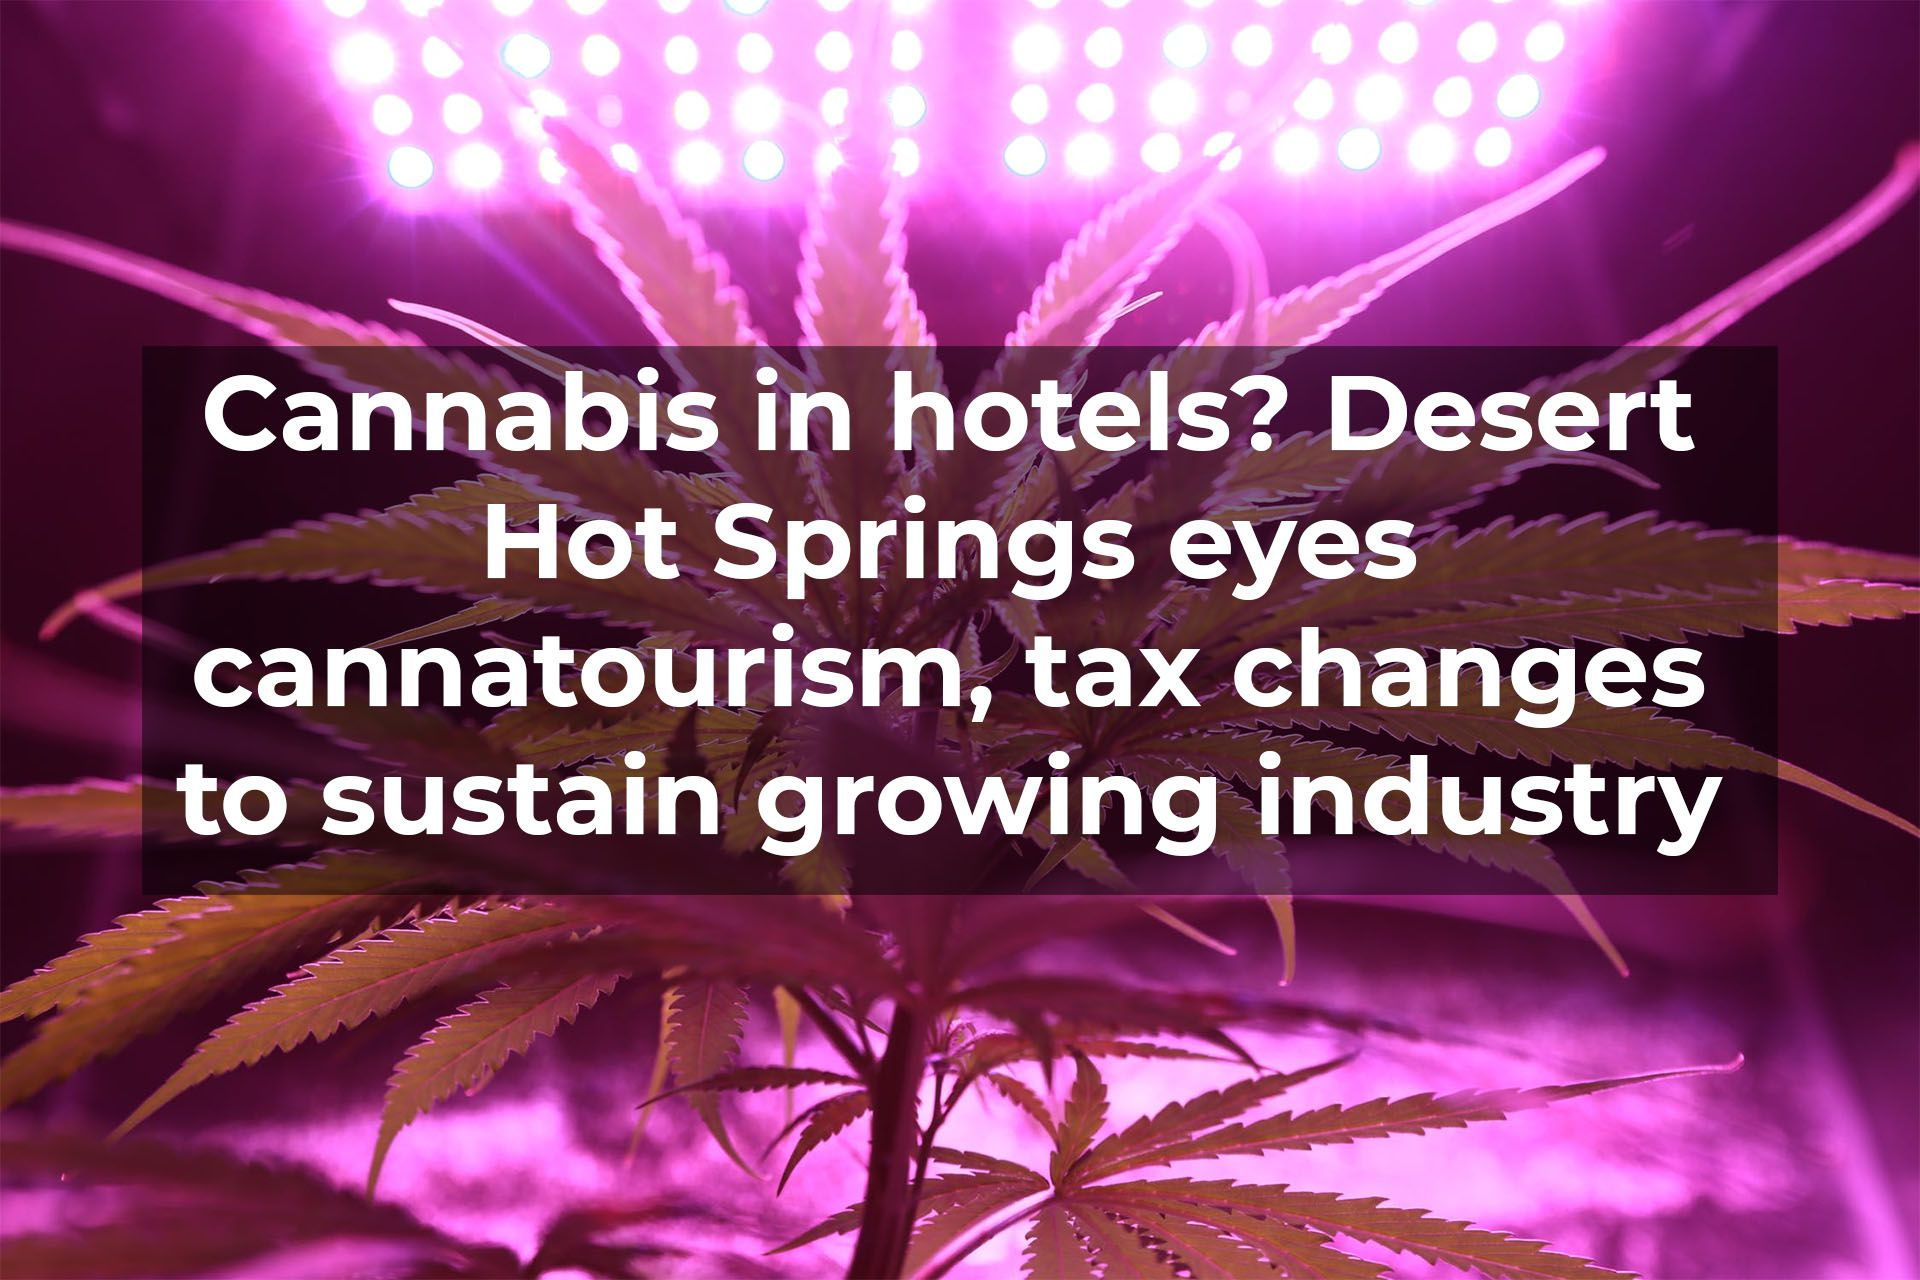 Cannabis in hotels? Desert Hot Springs eyes cannatourism, tax changes to sustain growing industry